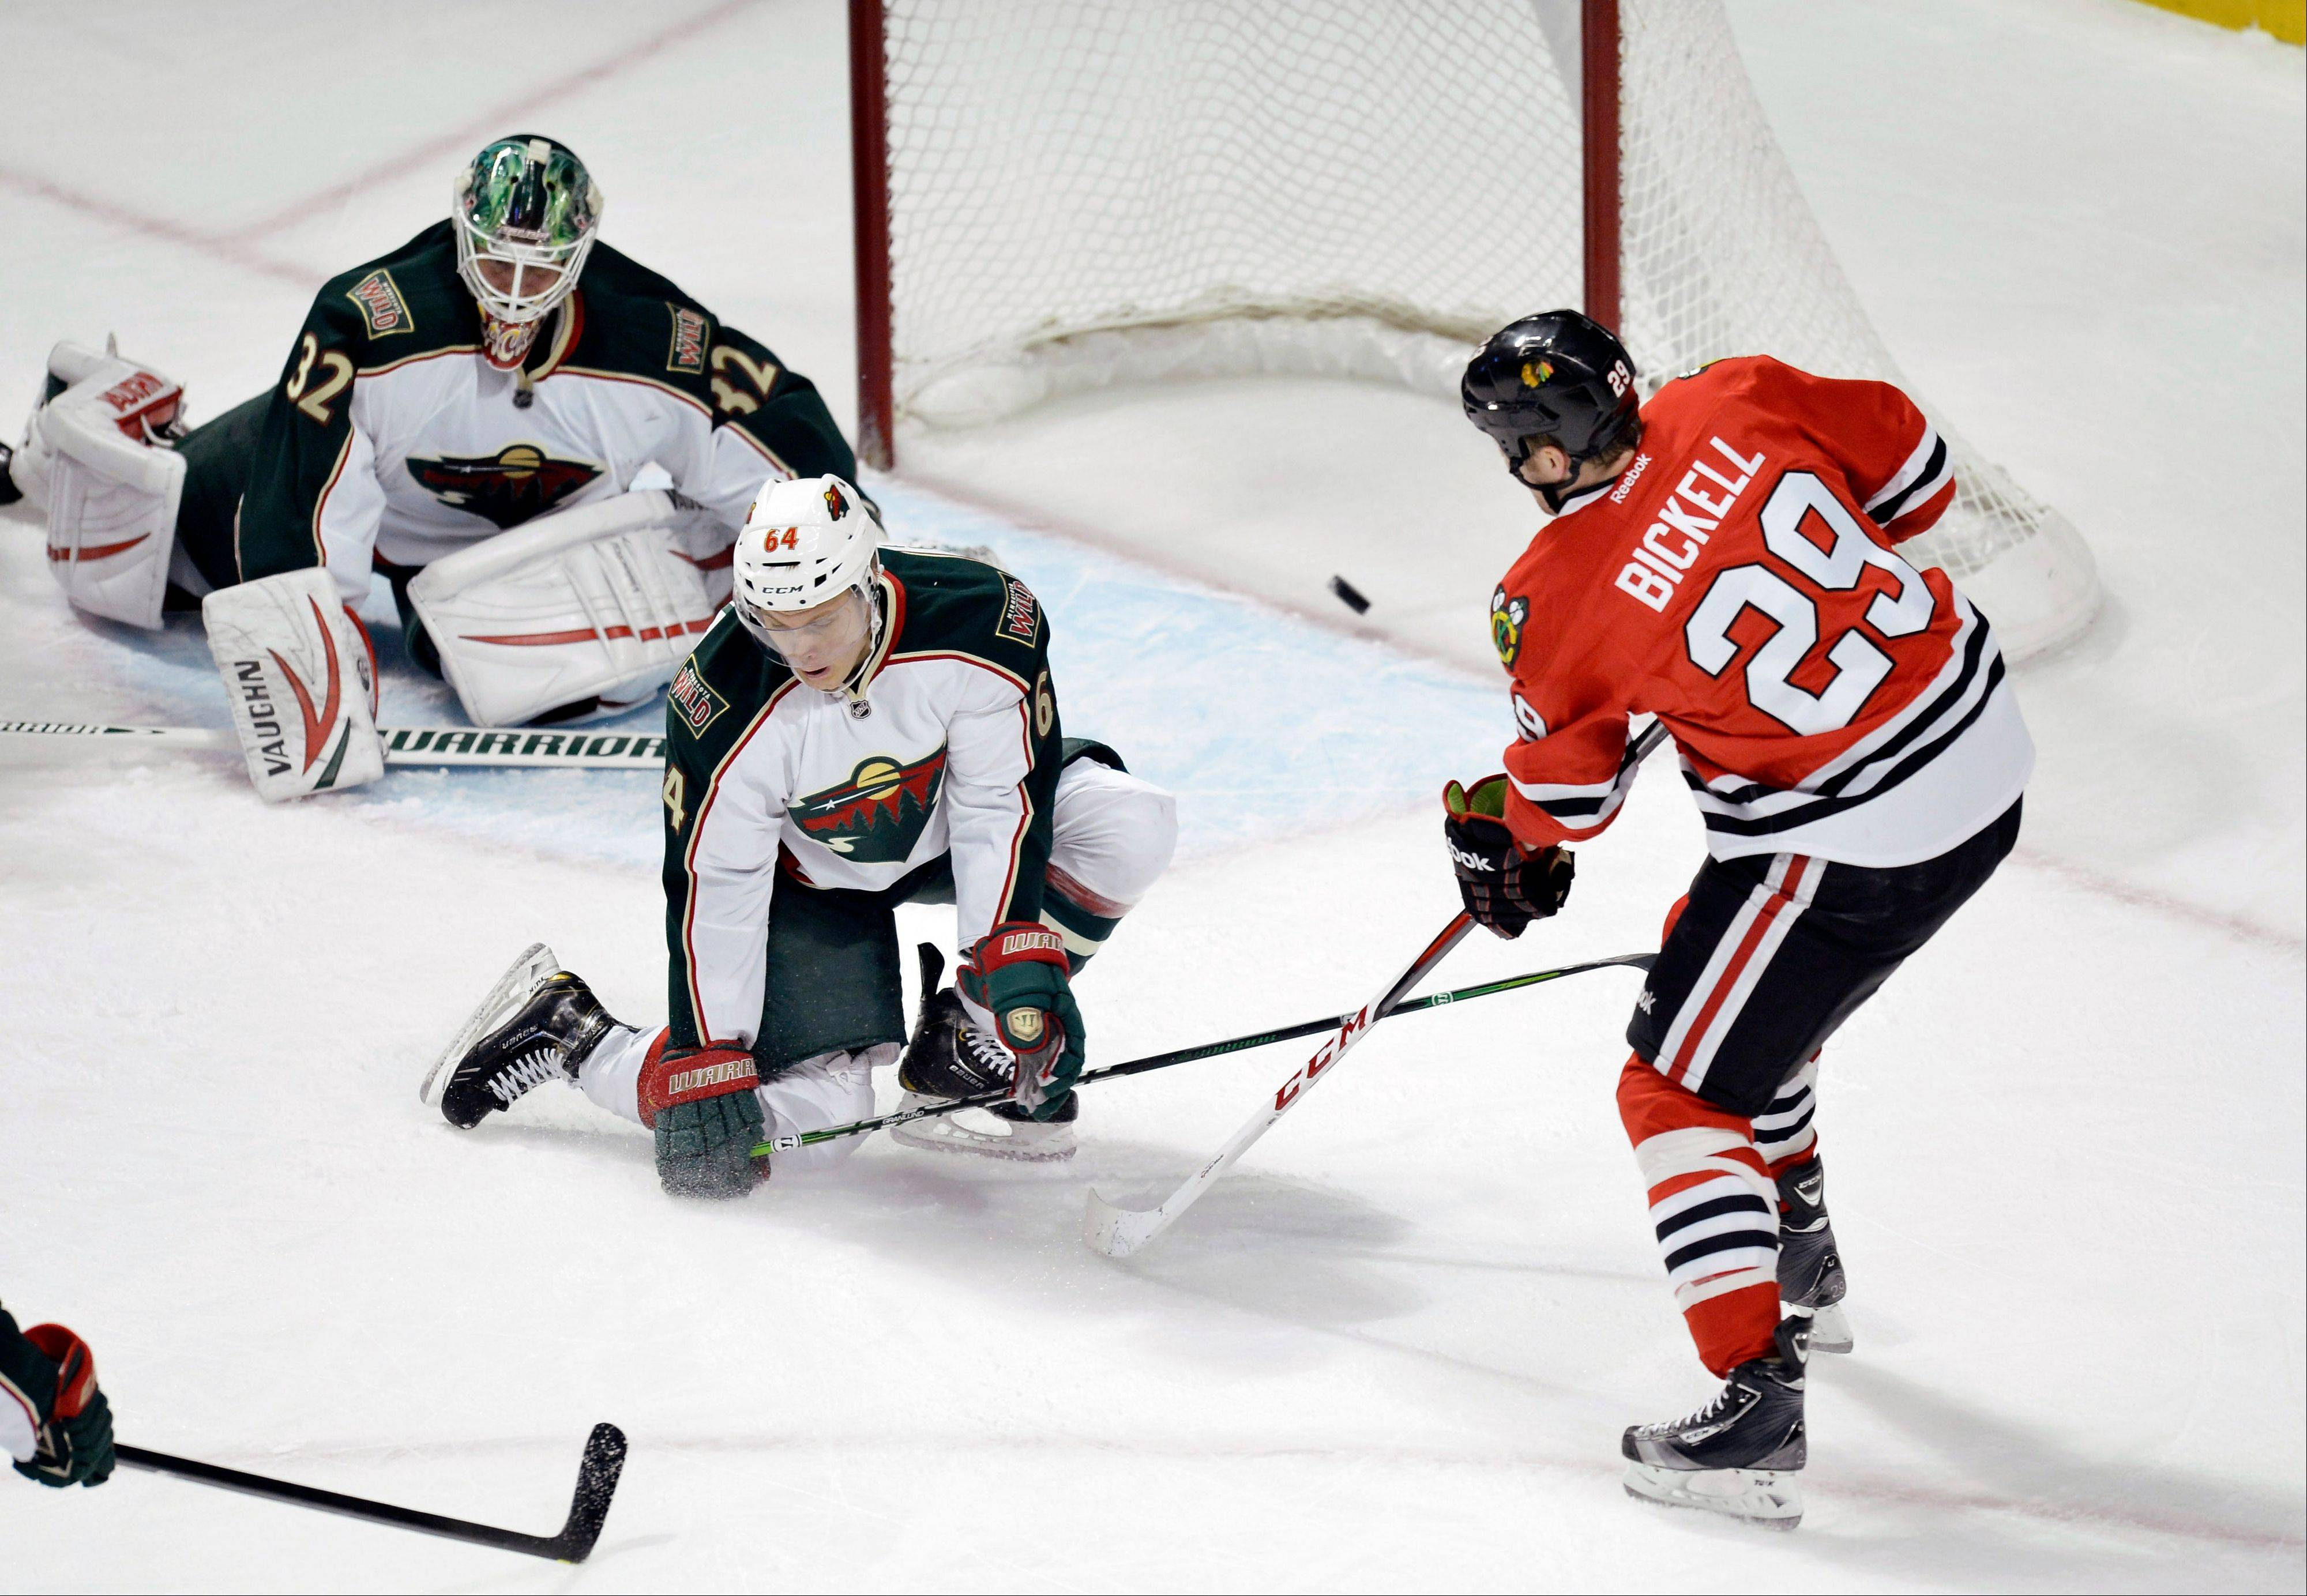 Chicago Blackhawks left wing Bryan Bickell, left to right, scores past Minnesota Wild center Mikael Granlund of Finland, and goalie Niklas Backstrom of Finland during the first period.